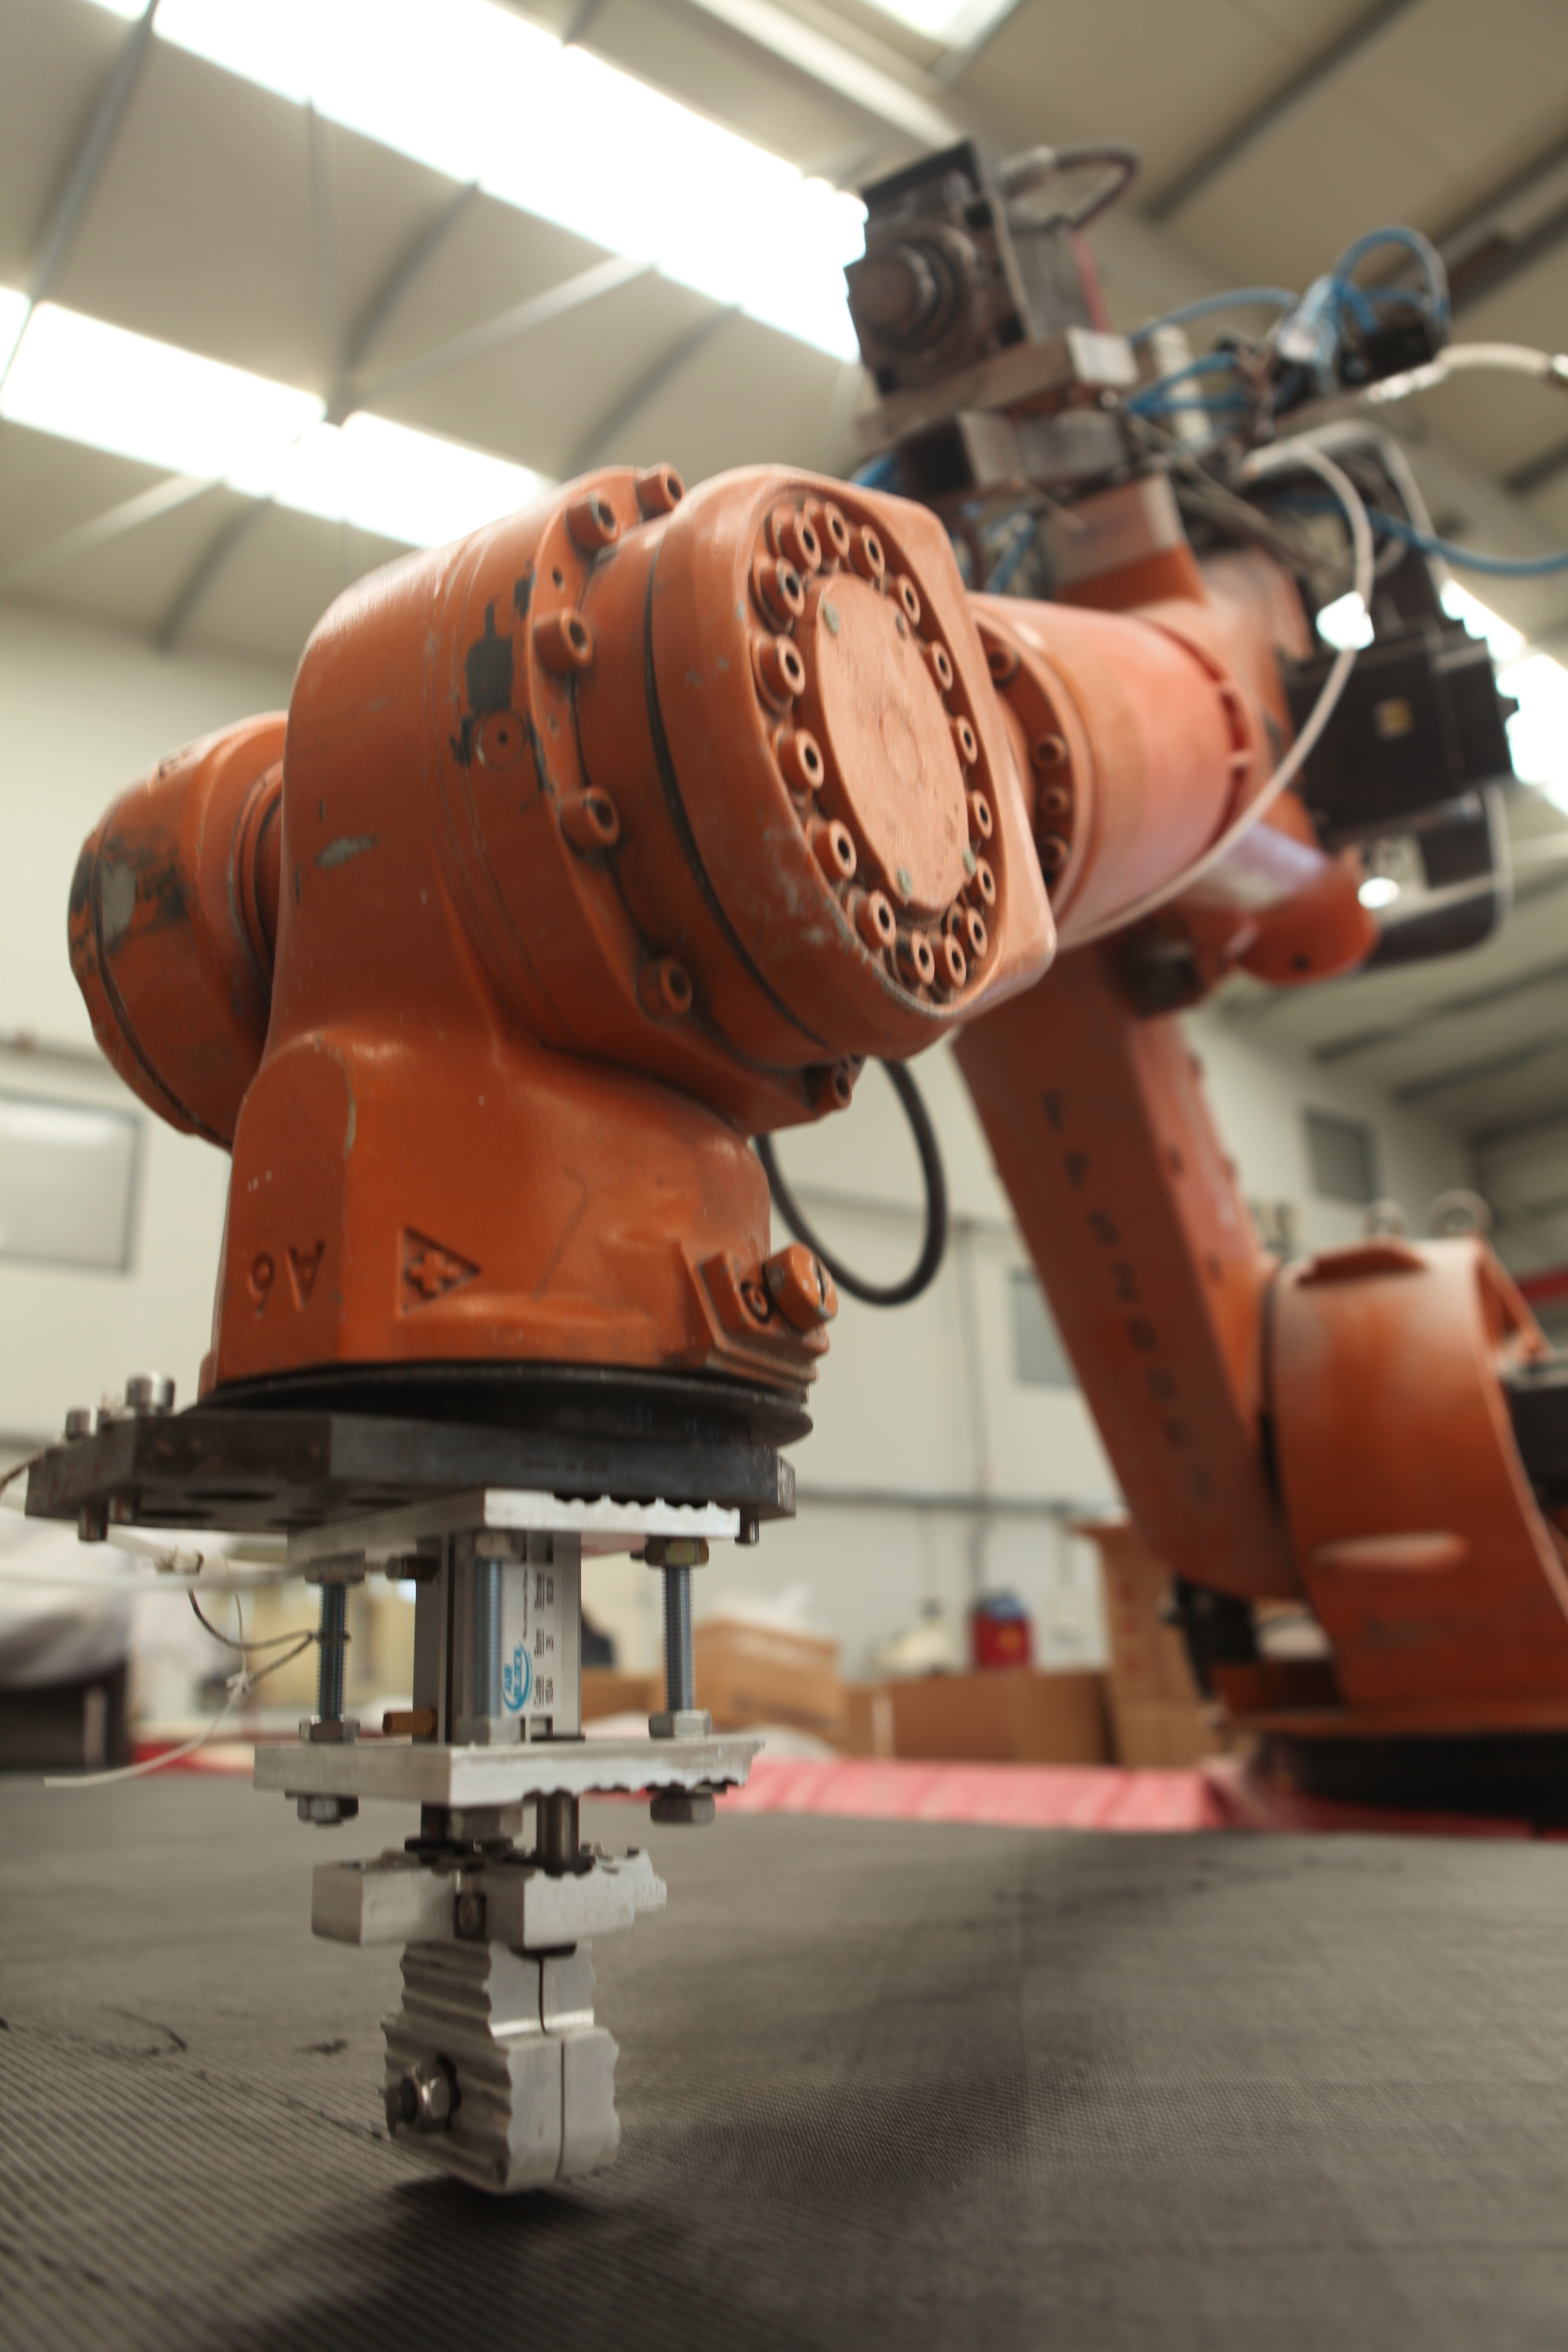 Robot CNC caron-fiber cut with in-house manipulator & cam software